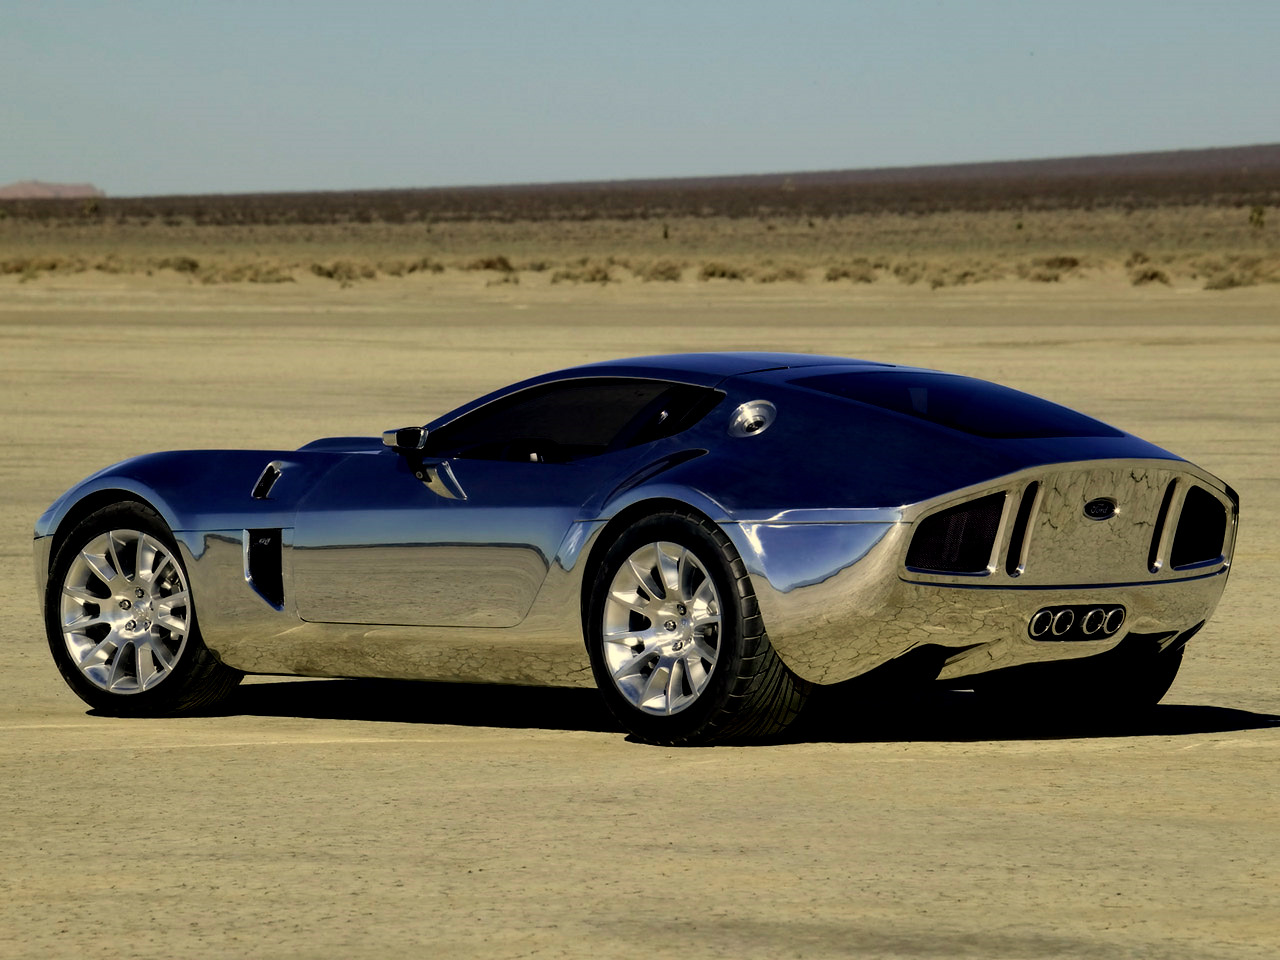 Cool Stuff From The Web Chris On Cars - Ford cool cars